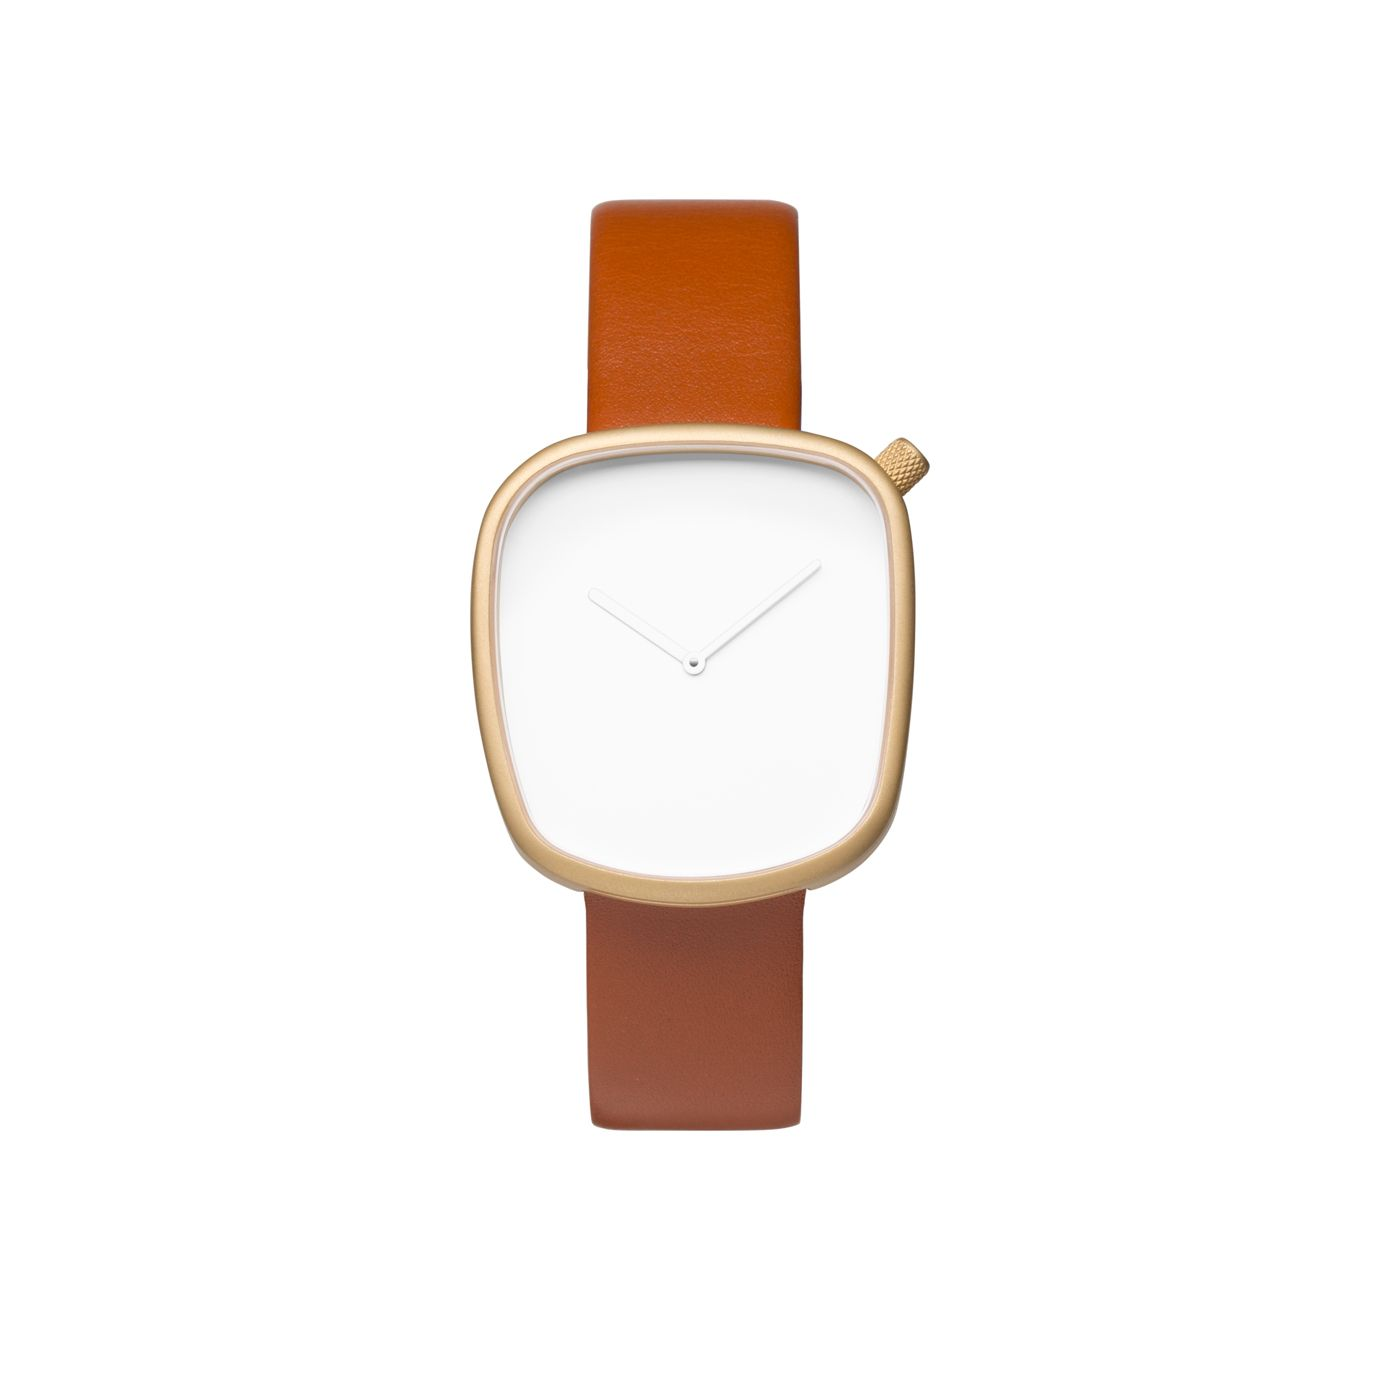 bulbul-pebble-watch-gold-7